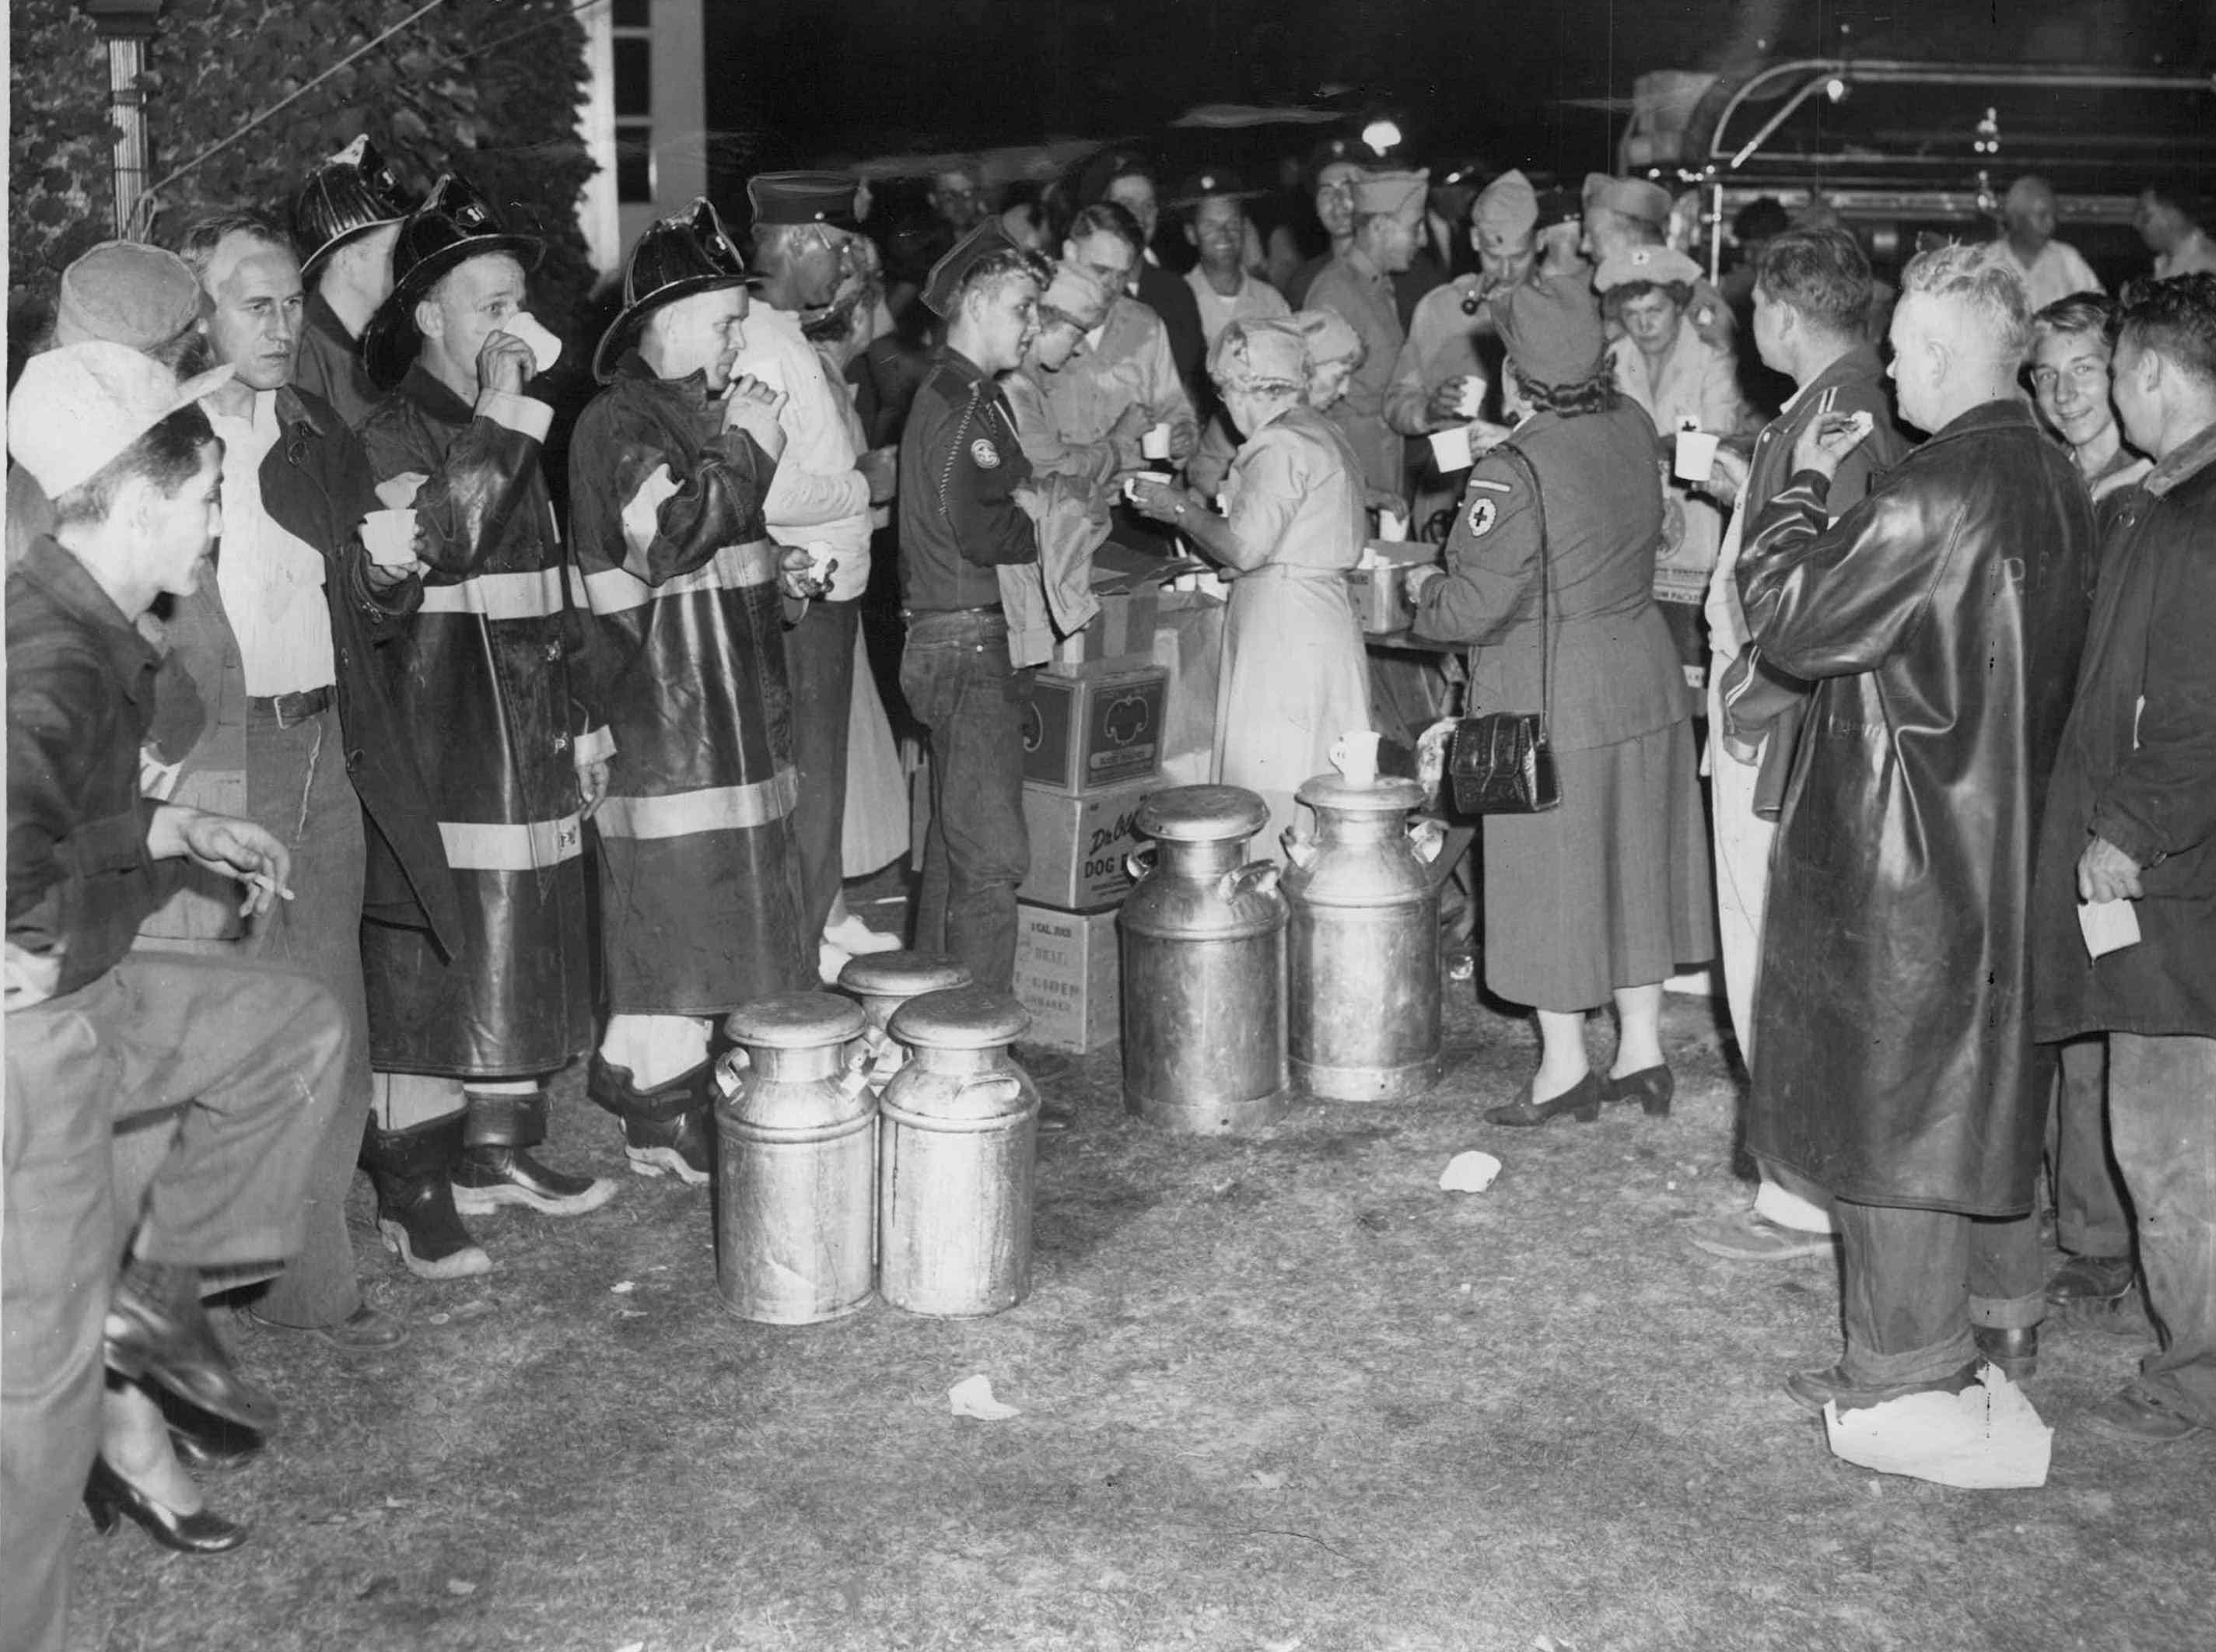 Red Cross aides pass out coffee, sandwiches to firemen, civil defense personnel and other volunteers at scene of Brighton explosions. (Staff photo, 9/21/1951)